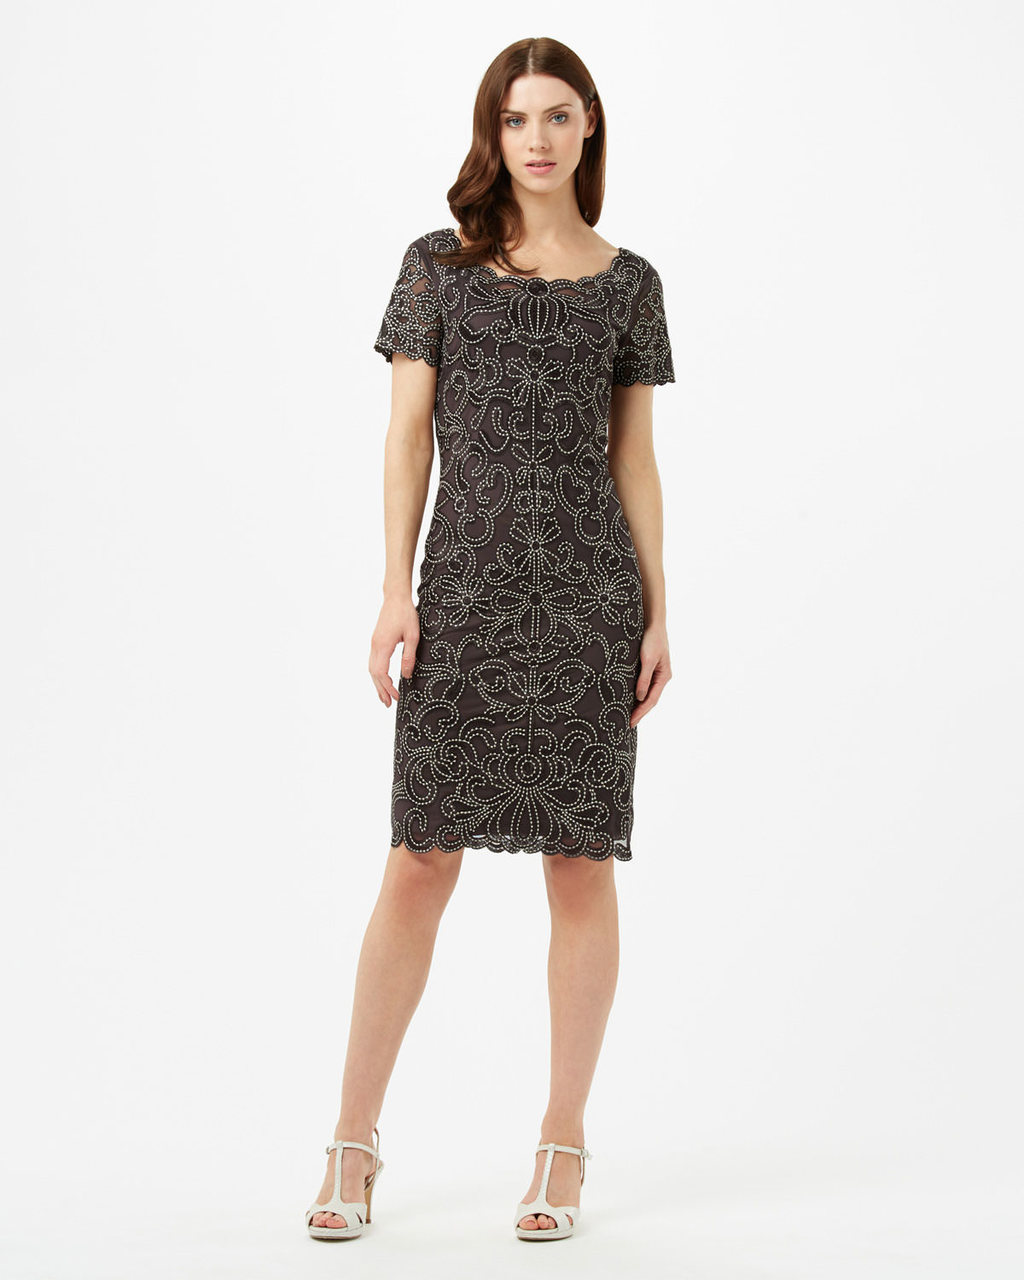 Taya Dress - style: shift; neckline: round neck; fit: tailored/fitted; predominant colour: black; occasions: evening; length: on the knee; sleeve length: short sleeve; sleeve style: standard; pattern type: fabric; pattern: patterned/print; texture group: other - light to midweight; fibres: viscose/rayon - mix; season: s/s 2016; wardrobe: event